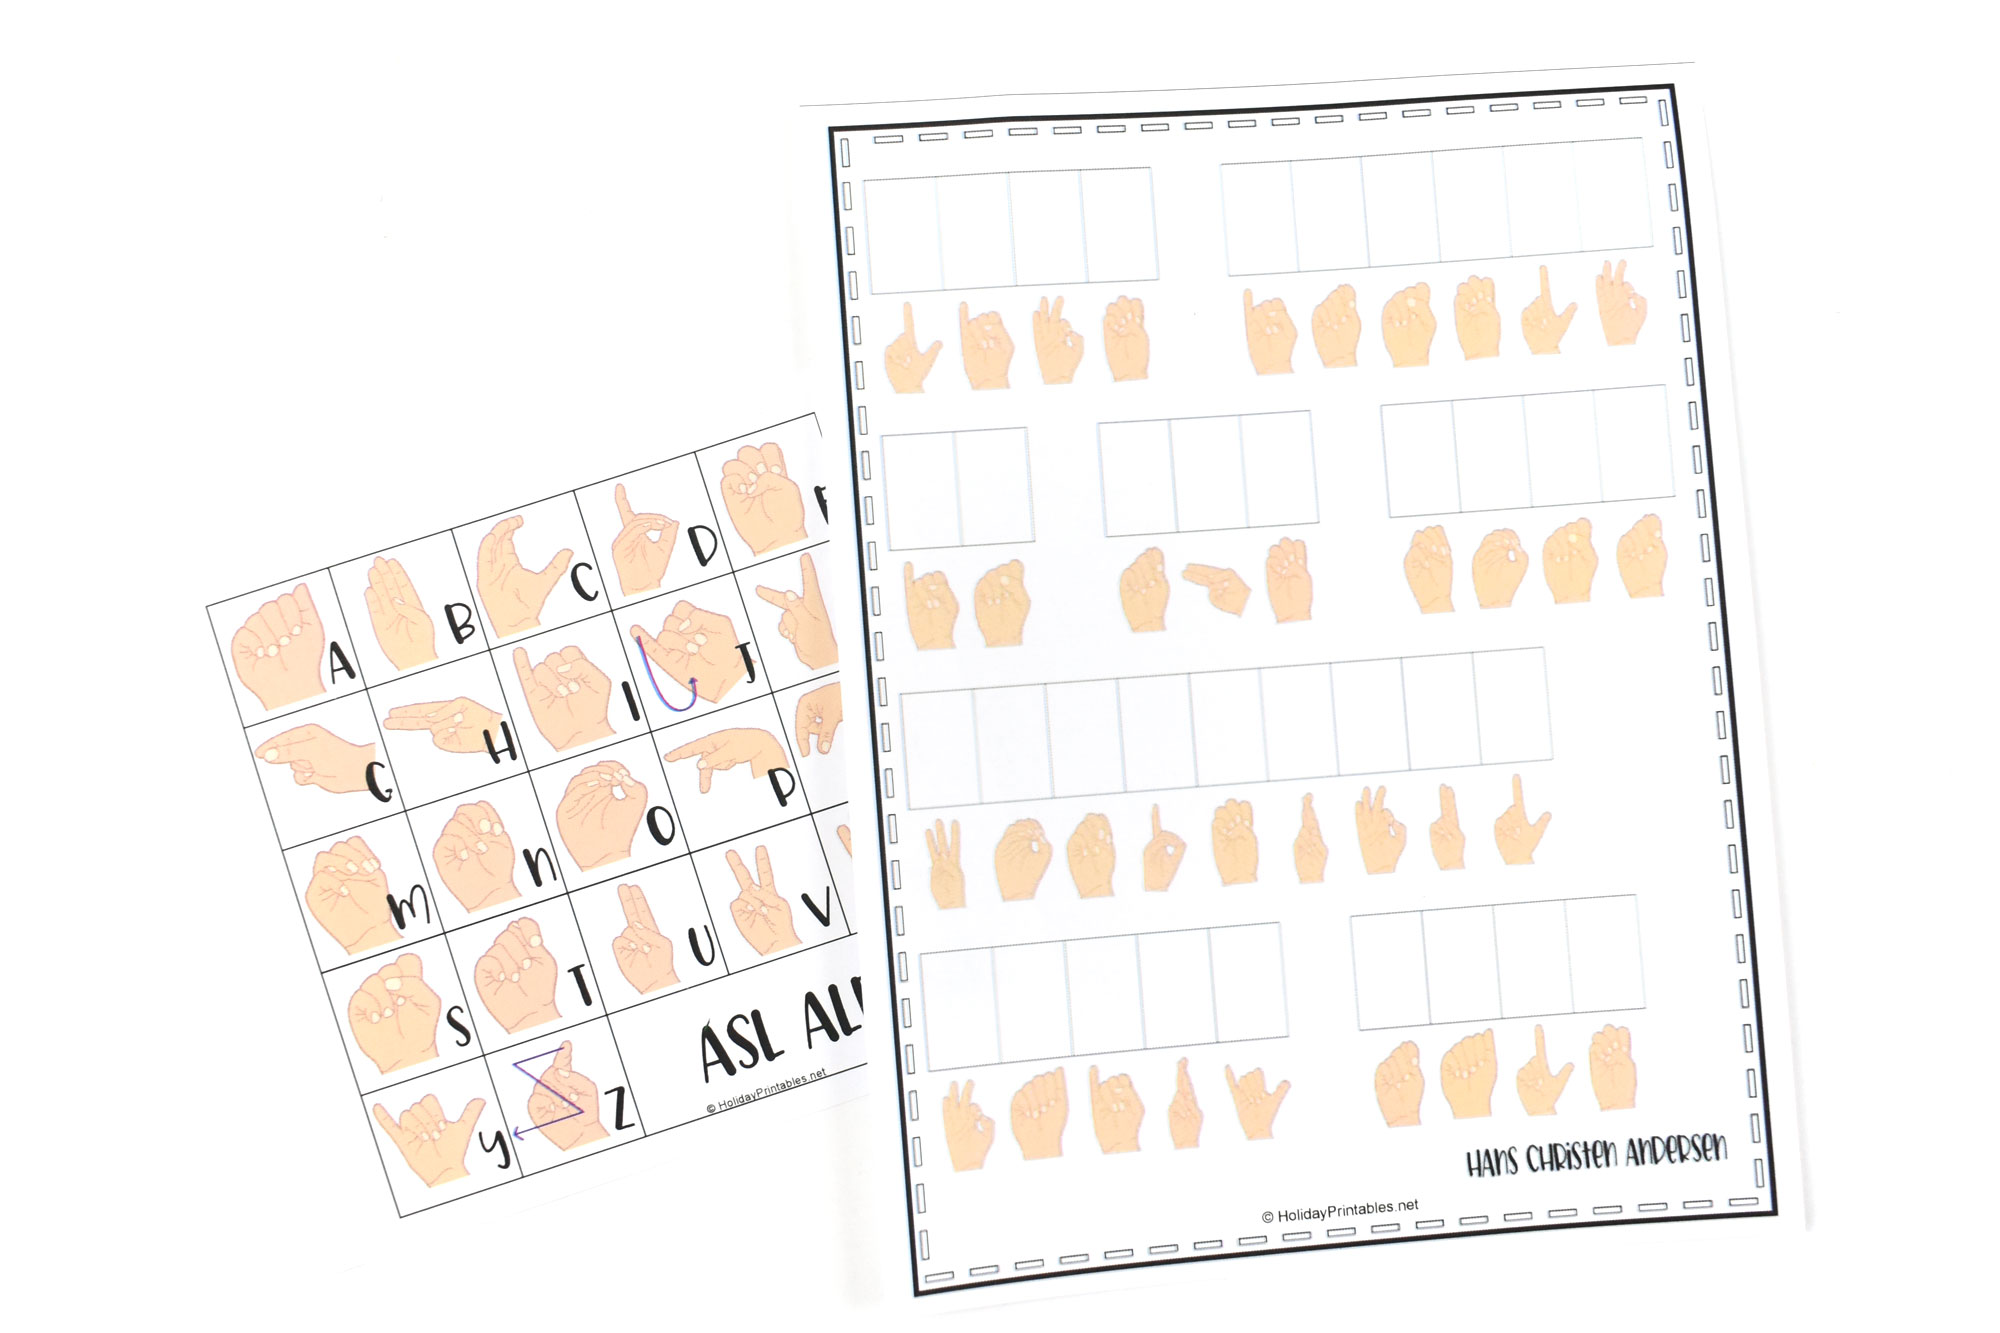 ASL Coded Phrases | HolidayPrintables.net